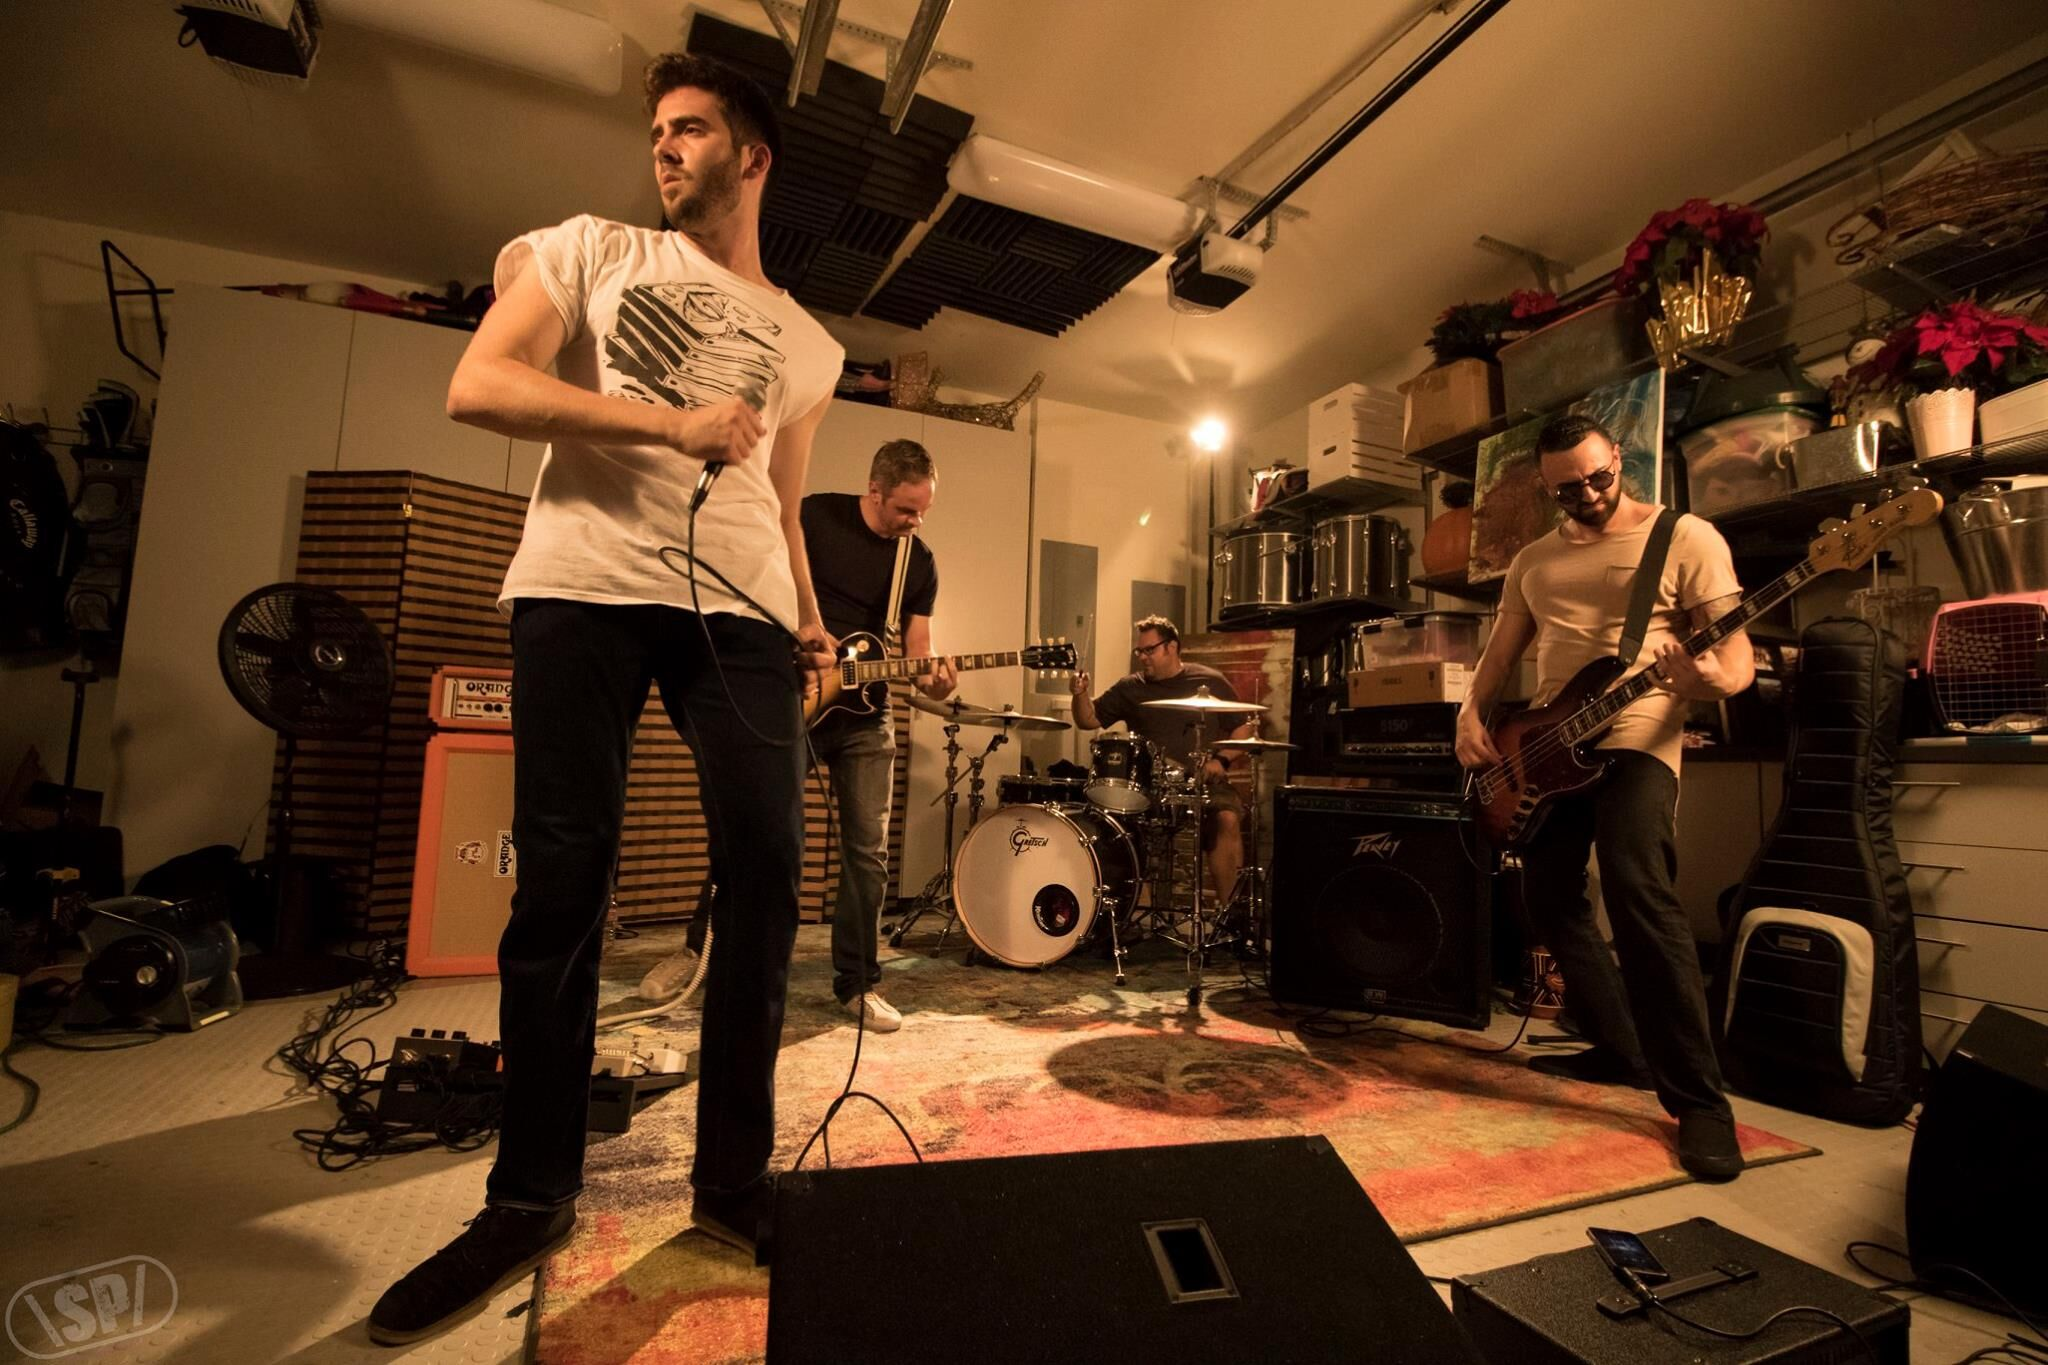 Lochness Monster make a splash with debut, 'Fables'